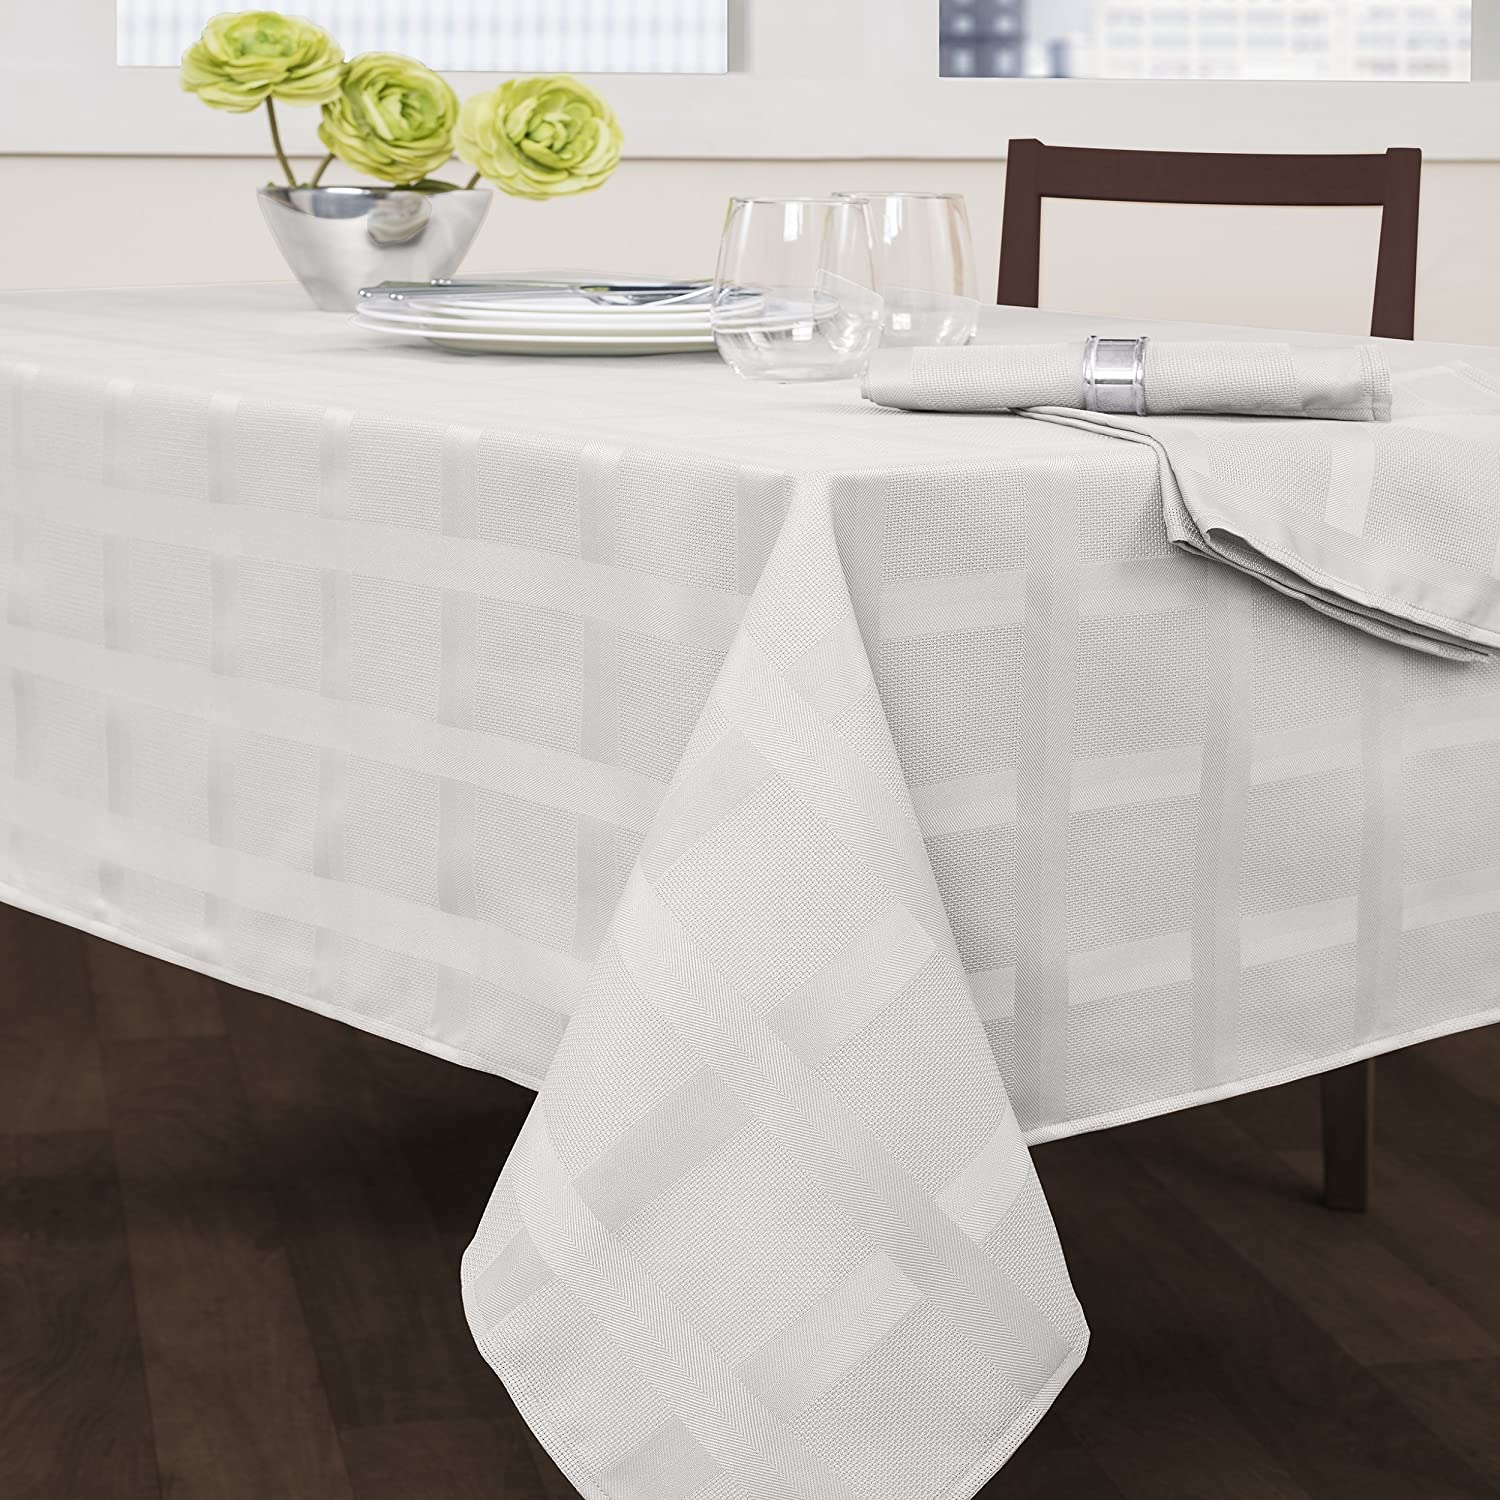 Creative Dining Group Maison Fabric Tablecloth, 52 x 70-Inch, White 450037